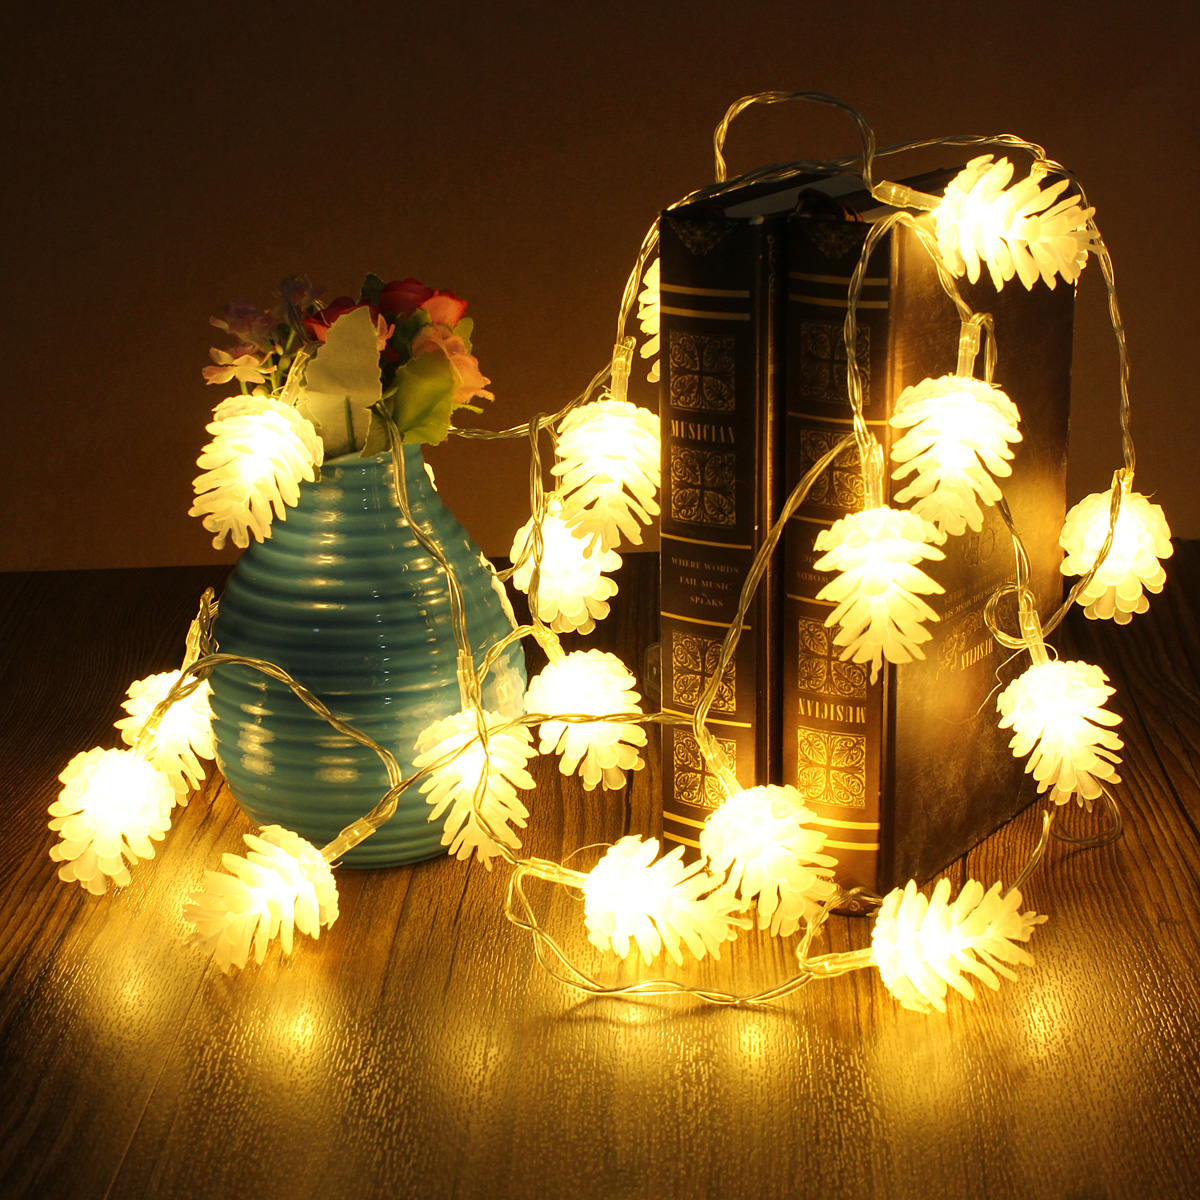 led decorative lights for weddings 2 2m 20 led pine cone string light lamp wedding 5442